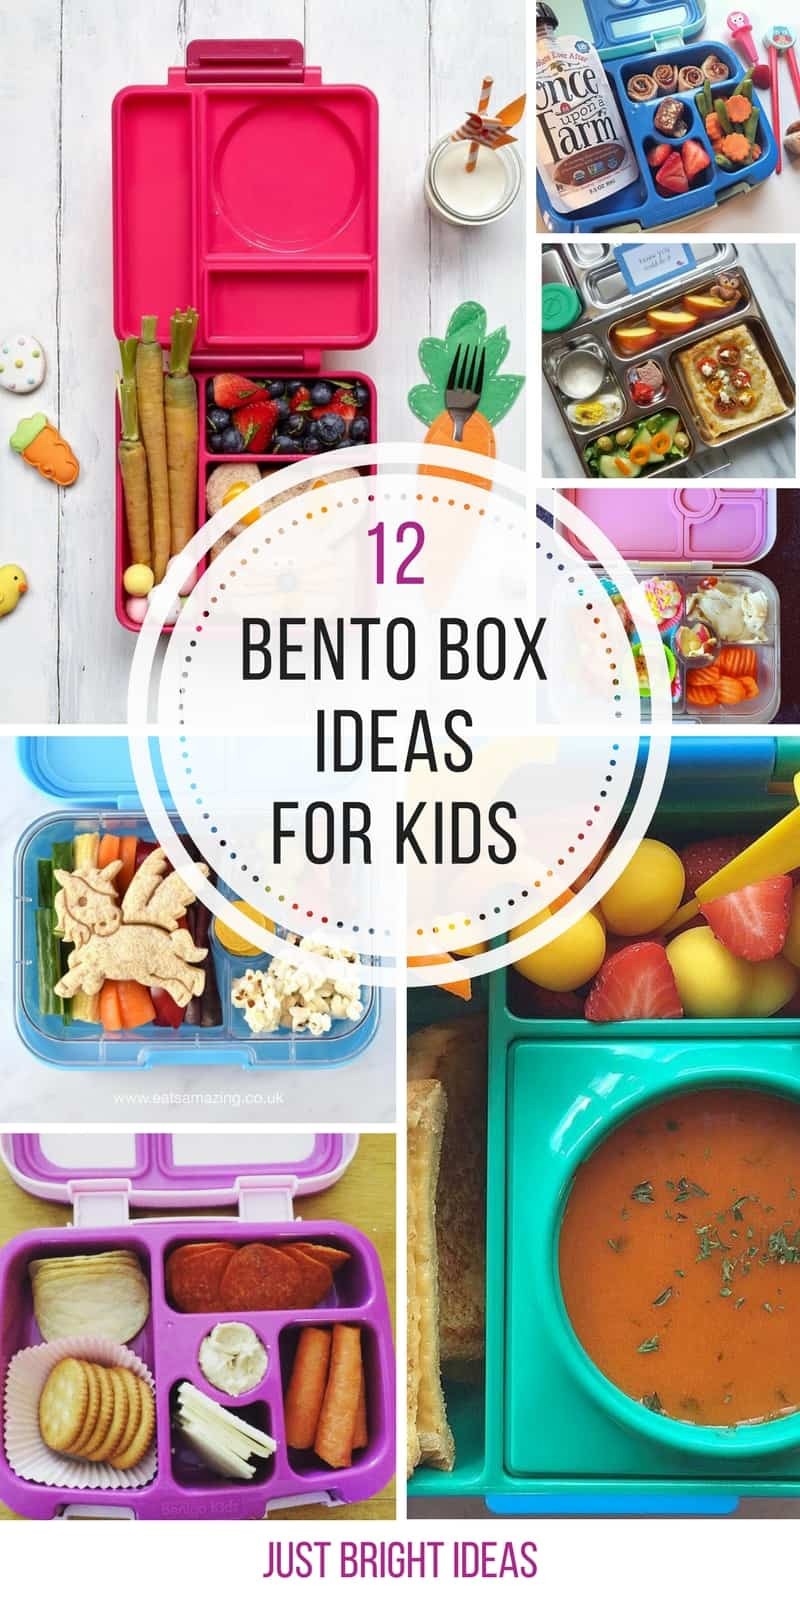 These Bento Box ideas for kids are brilliant!